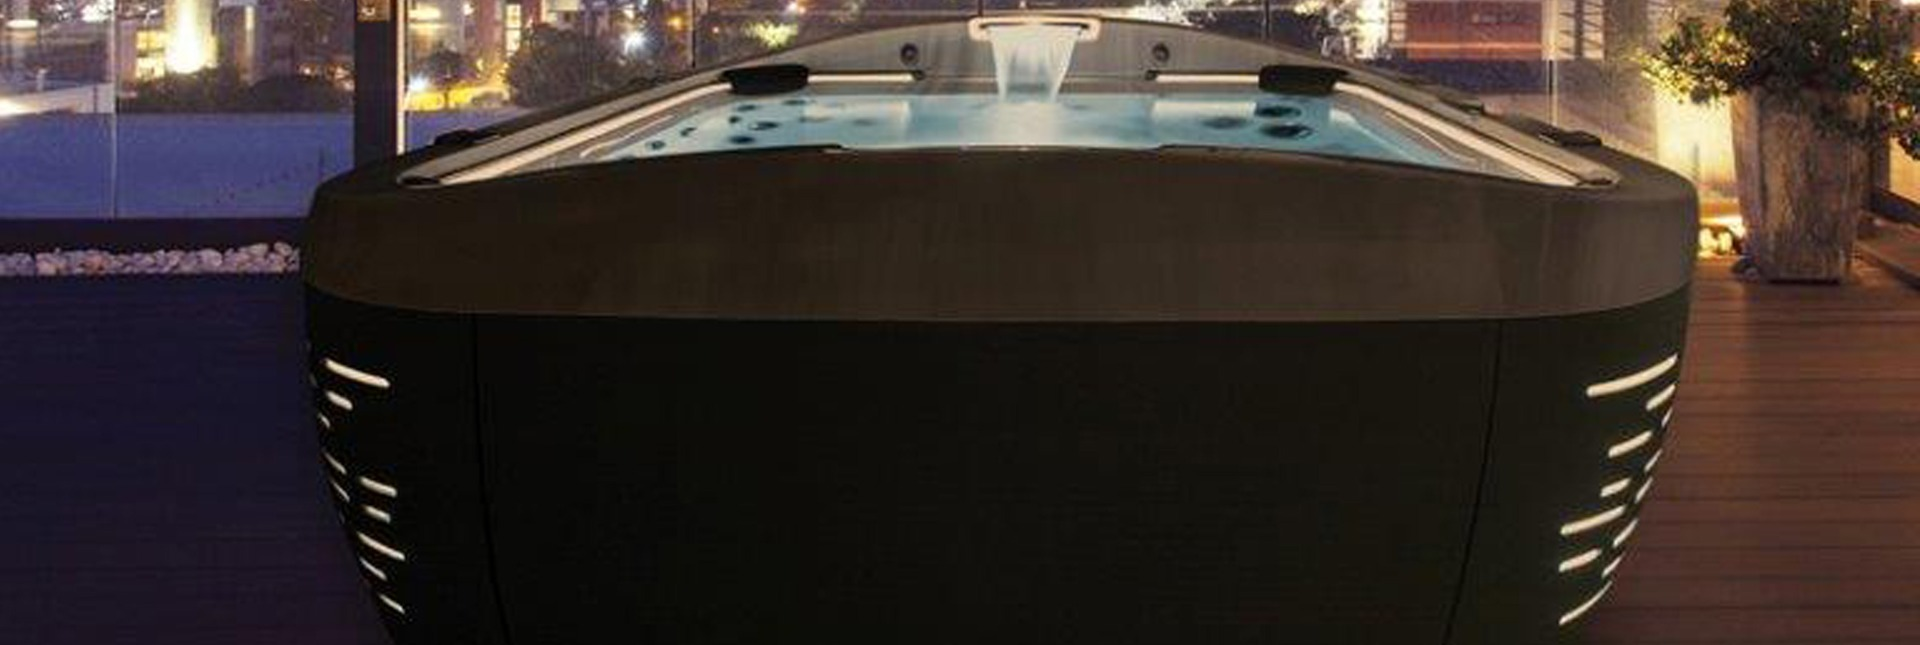 FIND YOUR PERFECT HOT TUB